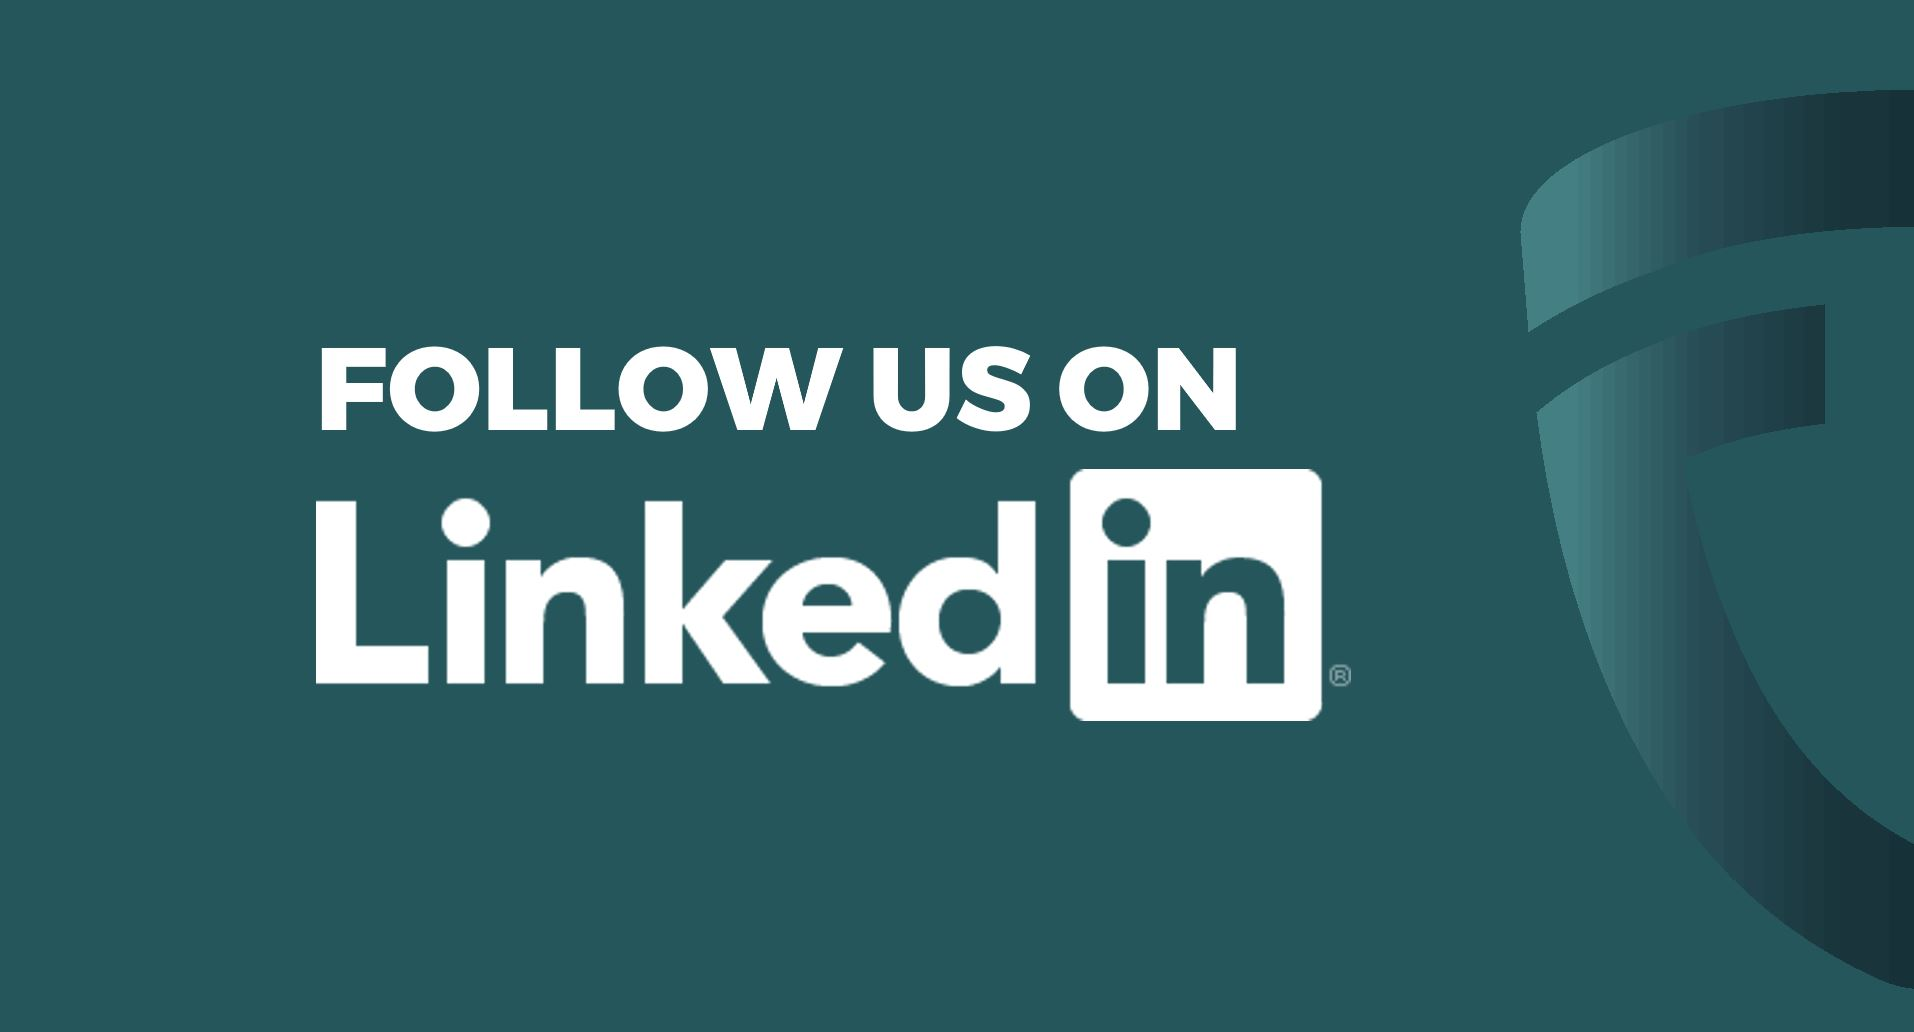 Follow us on LinkedIn-1